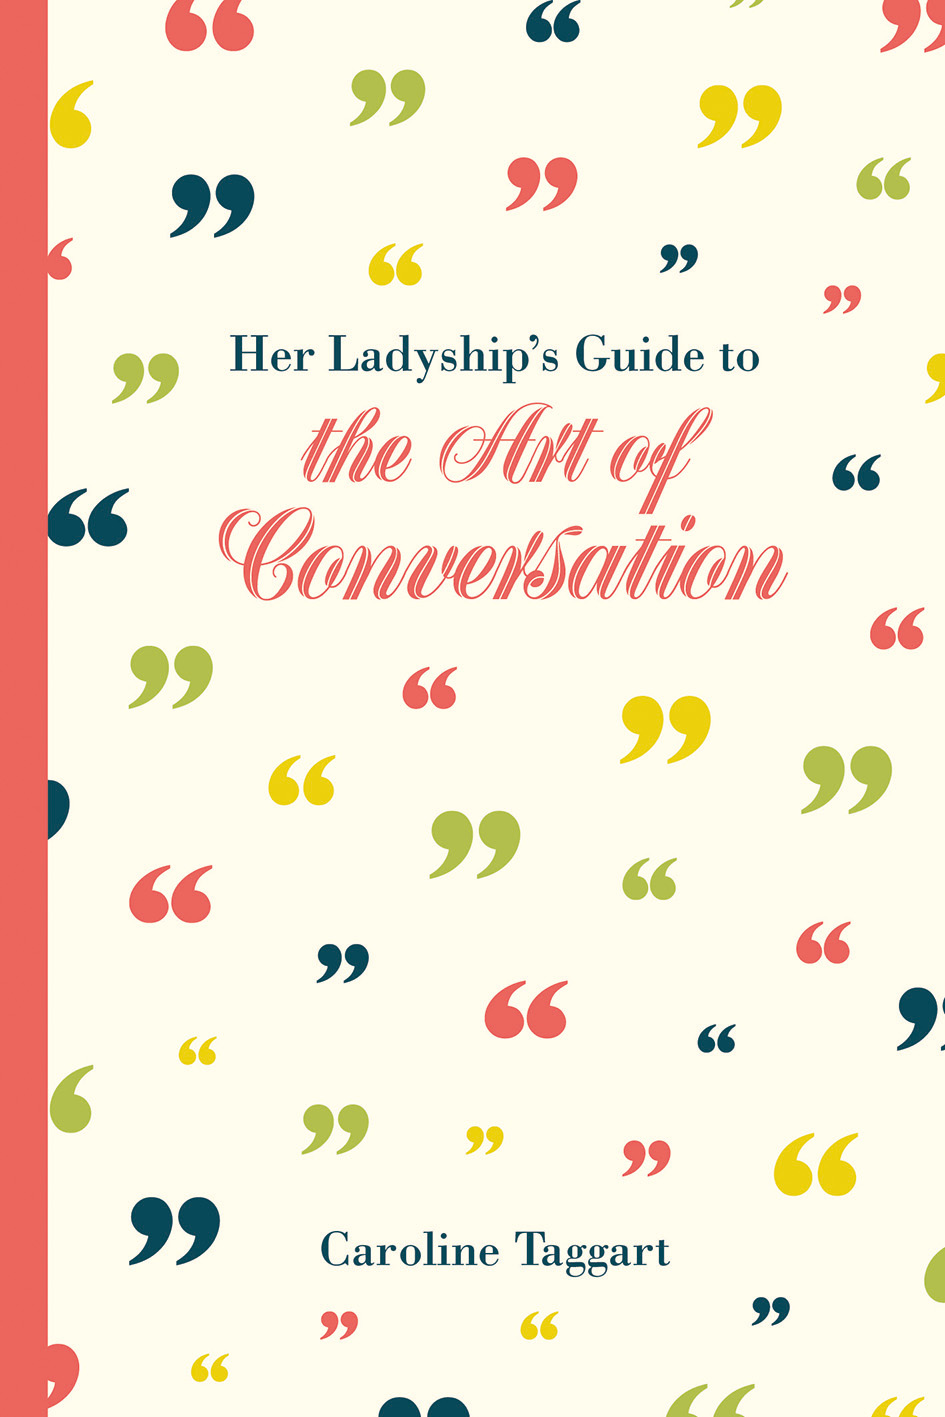 Her Ladyship's Guide to the Art of Conversation